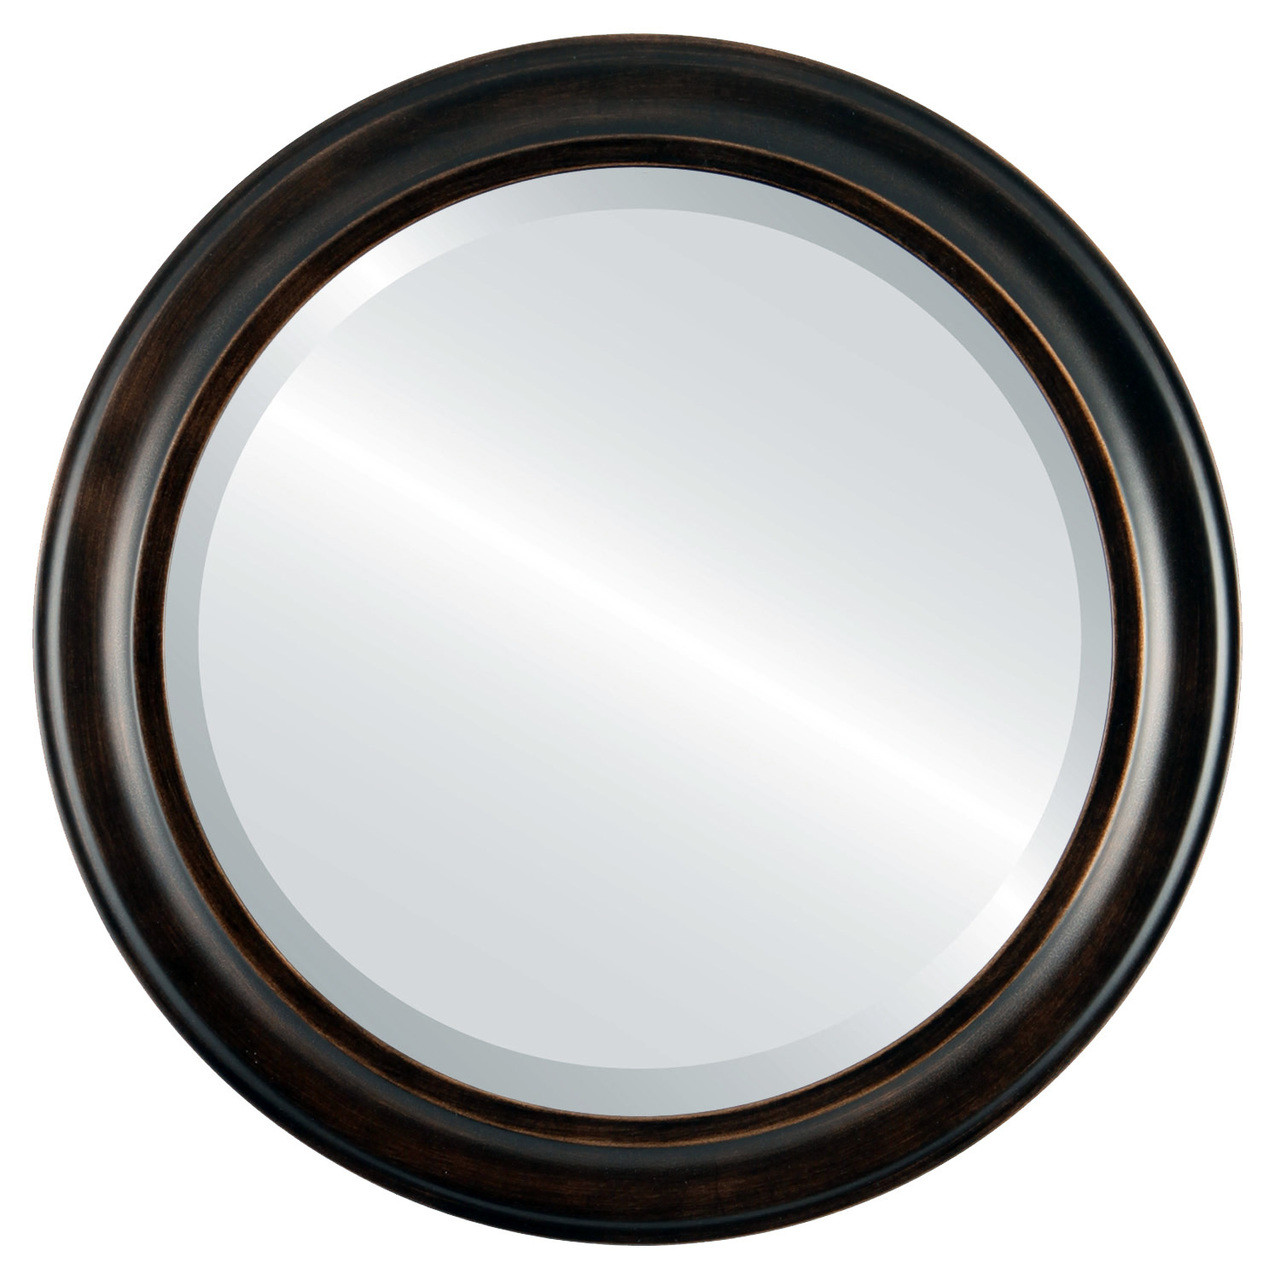 Contemporary Black Round Mirrors from $97 | Free Shipping